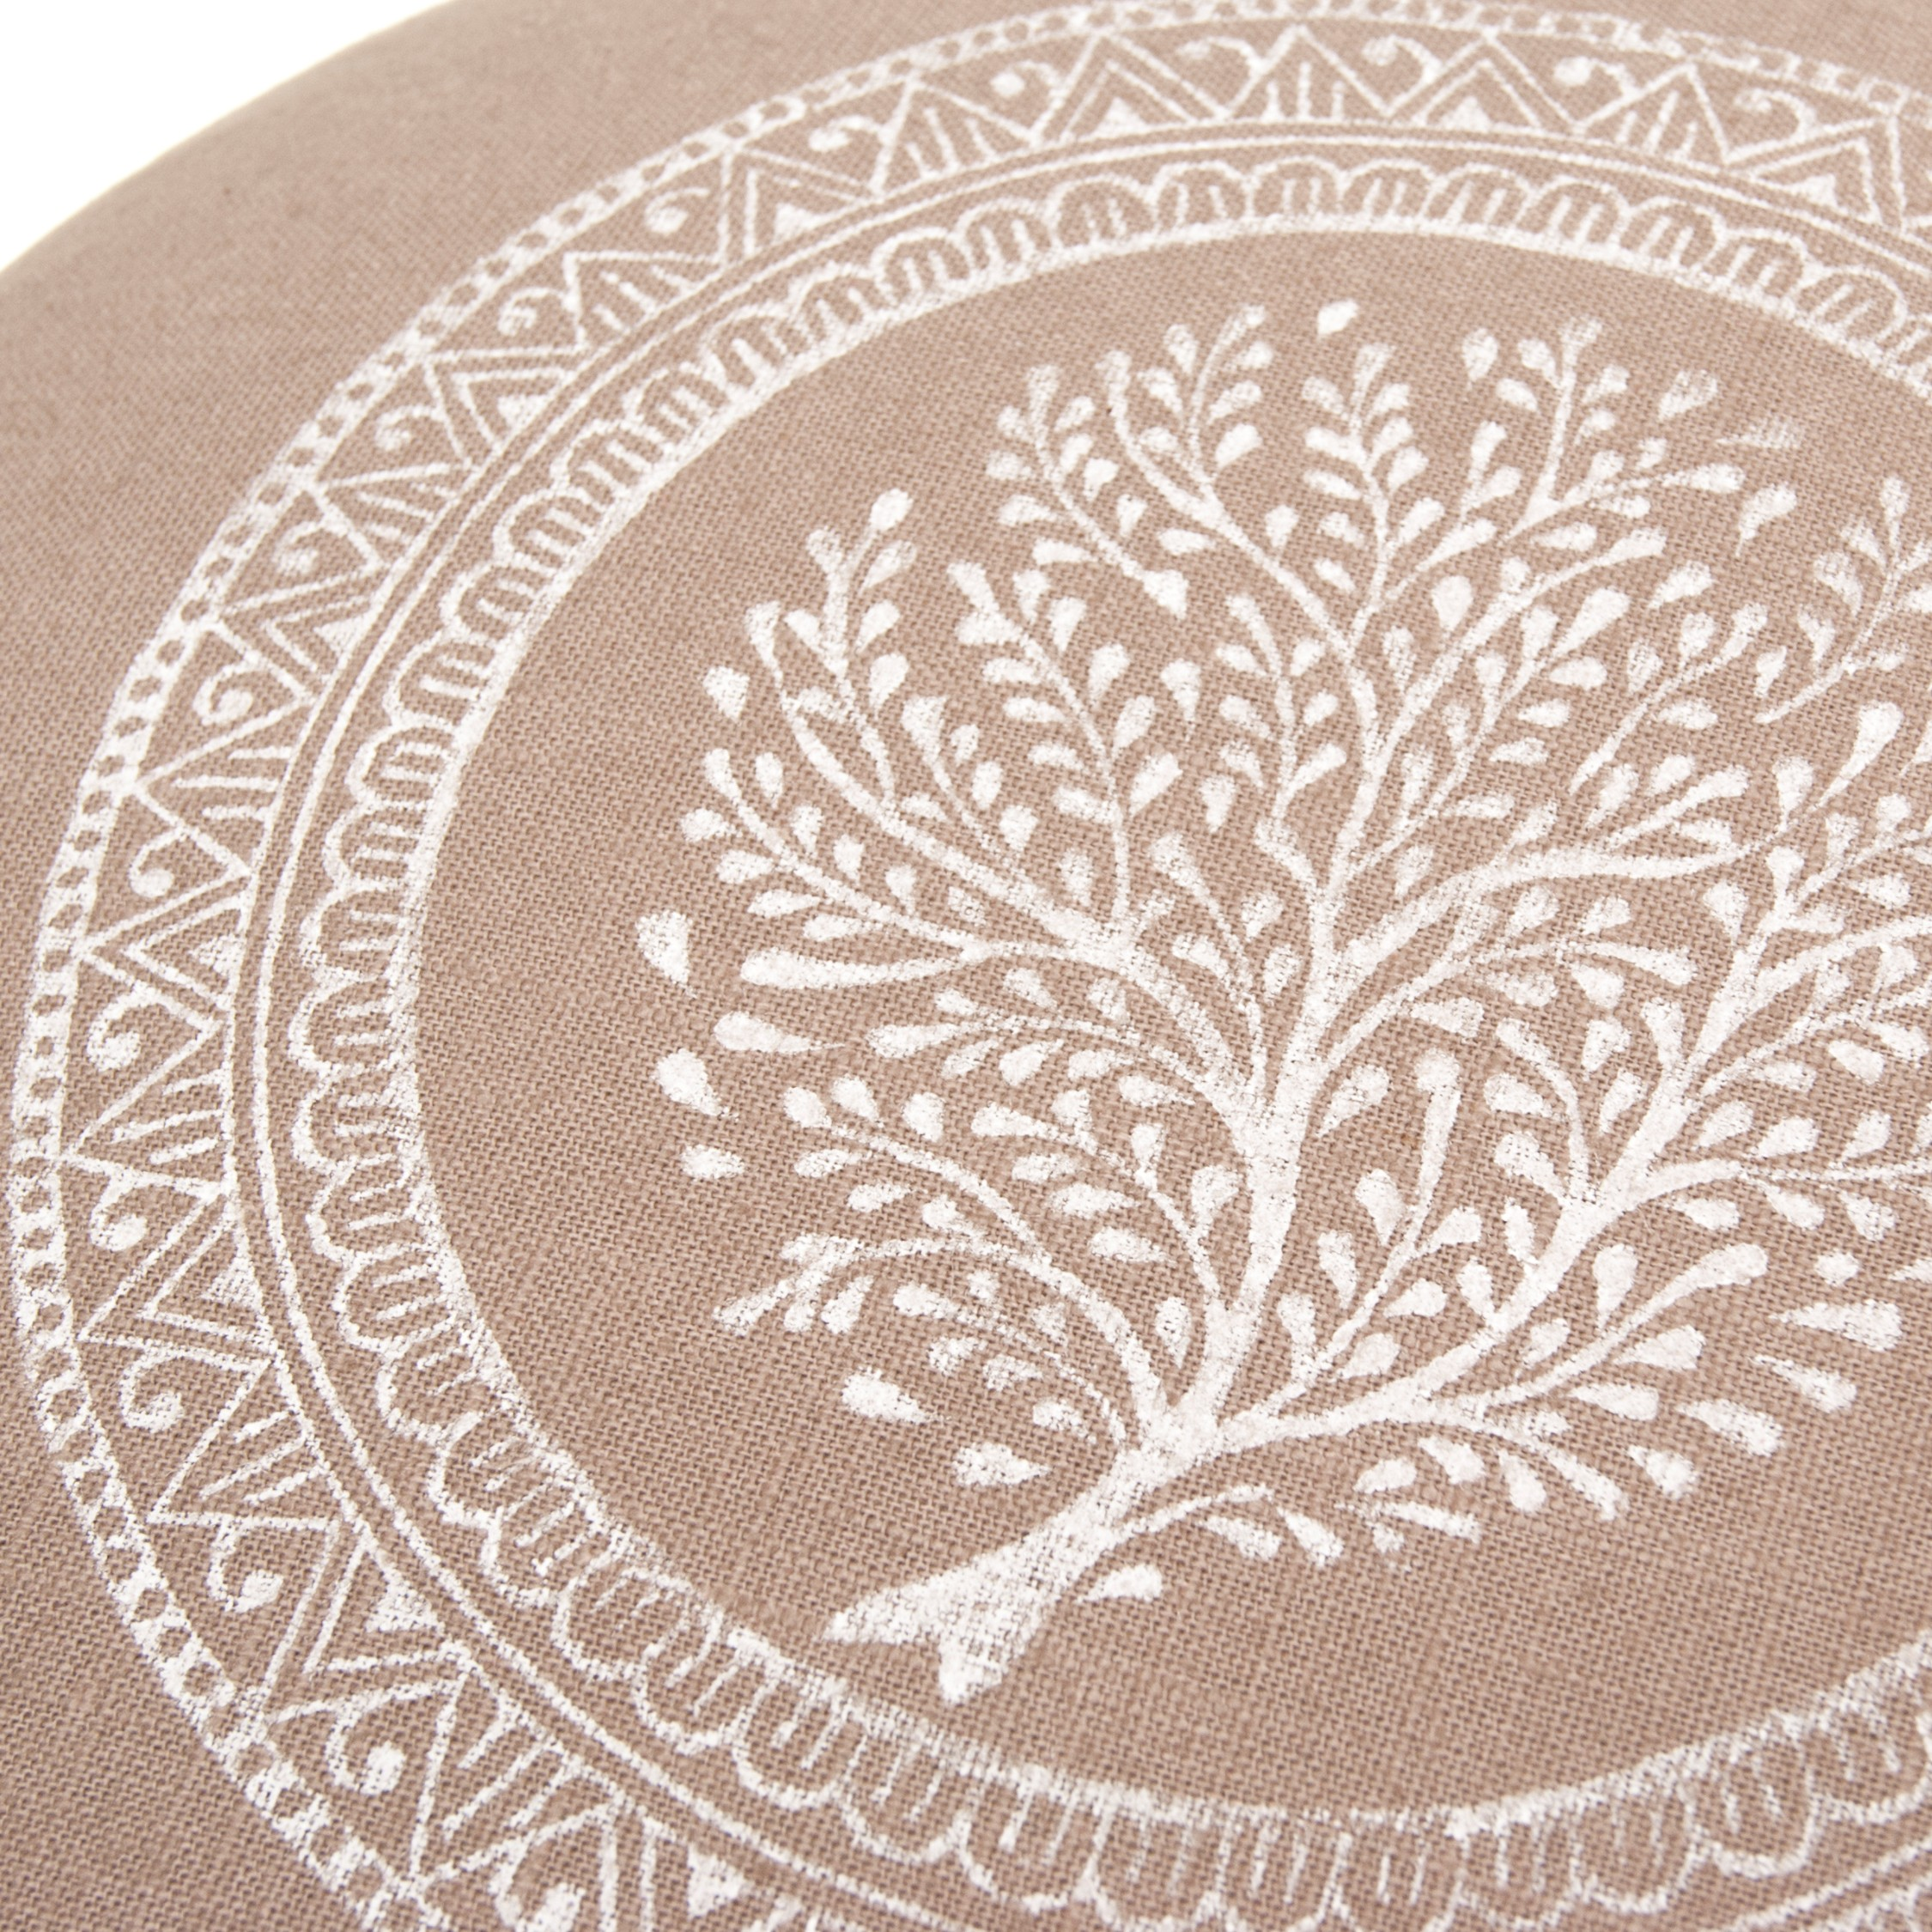 Tree of Life print on meditaiton cushion by Pure Prana Label